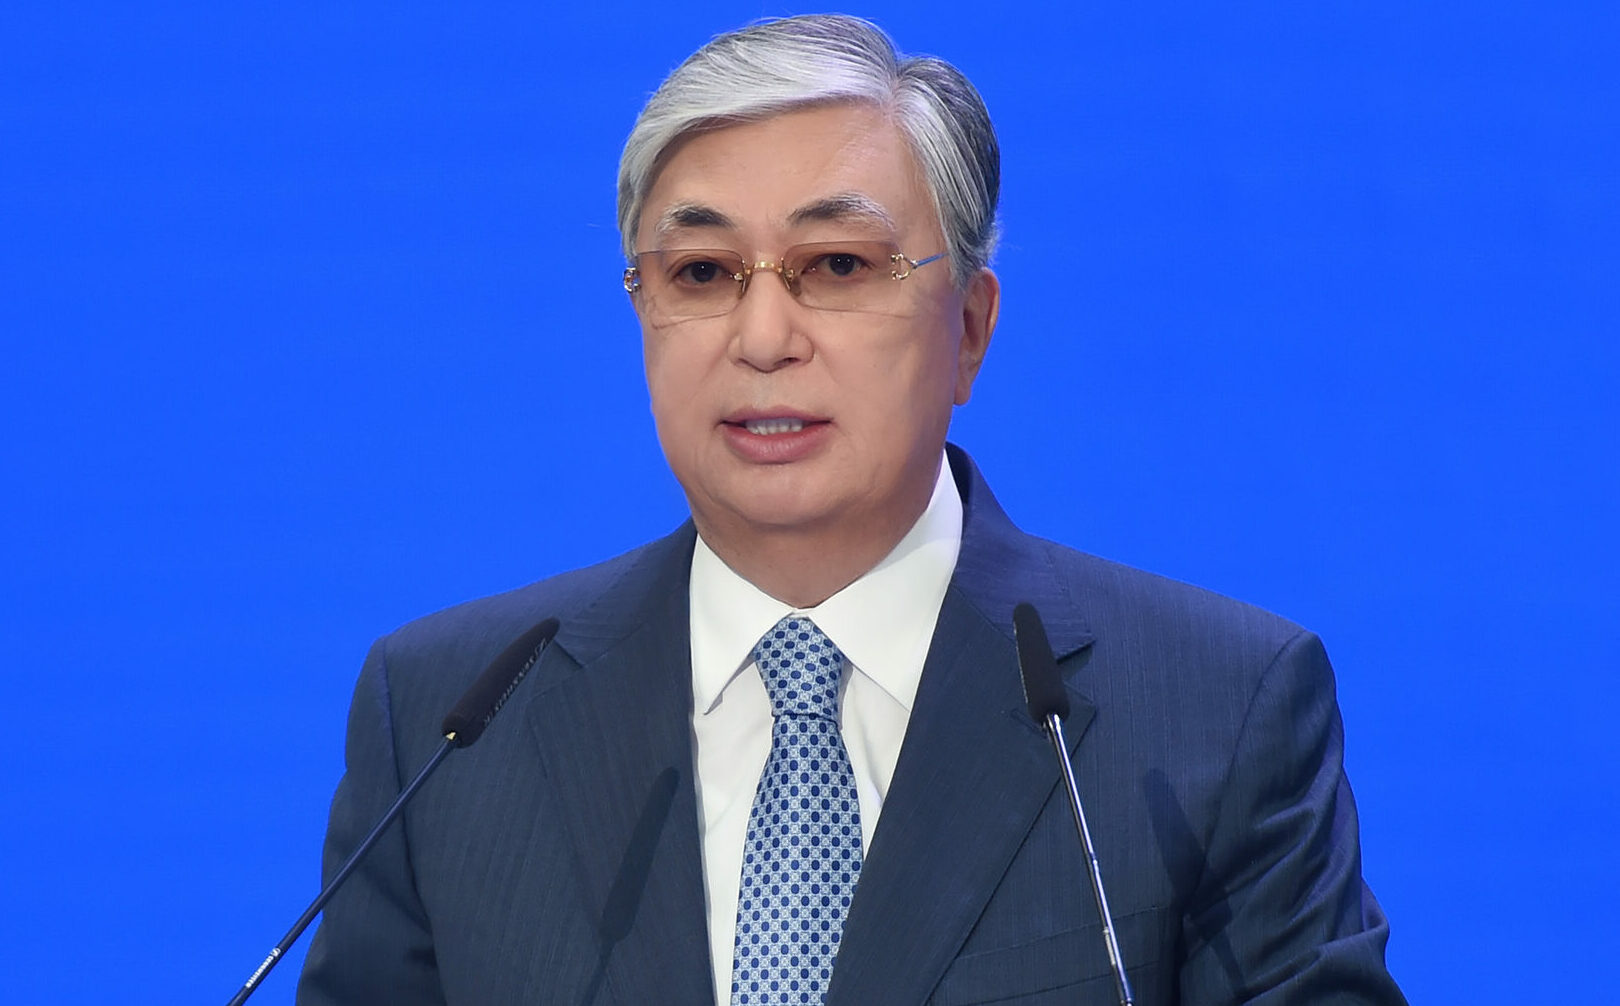 95a4fa669f0e973cd5573c7275251561 e1567401703203 - Tokayev sent a telegram to the Prime Minister of Japan